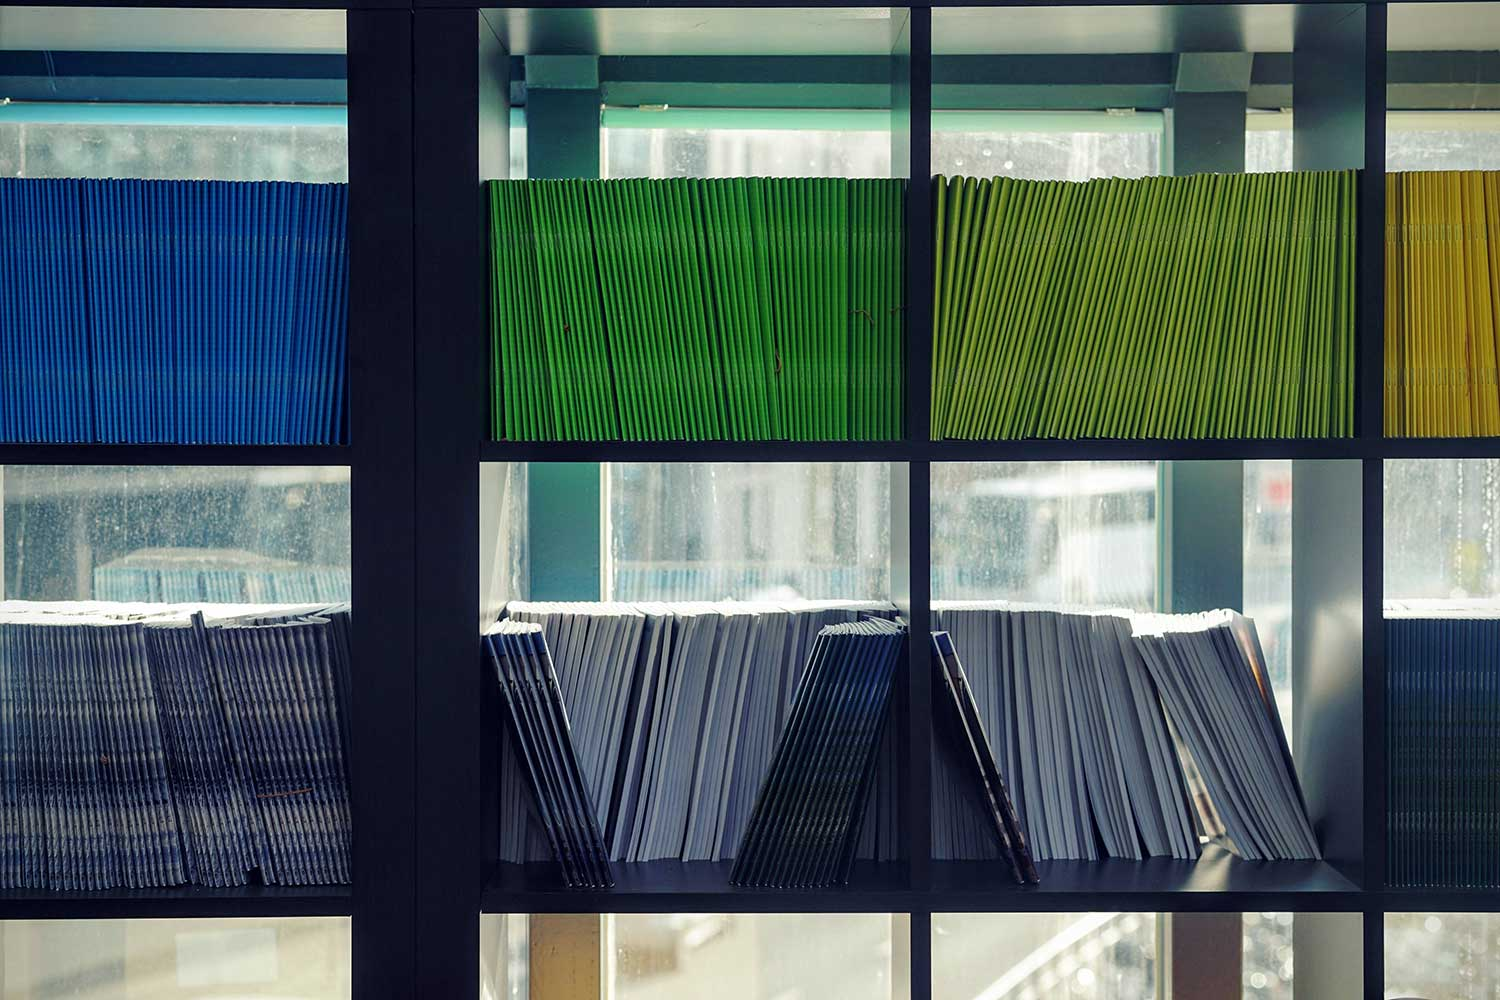 Colourful reports on shelf